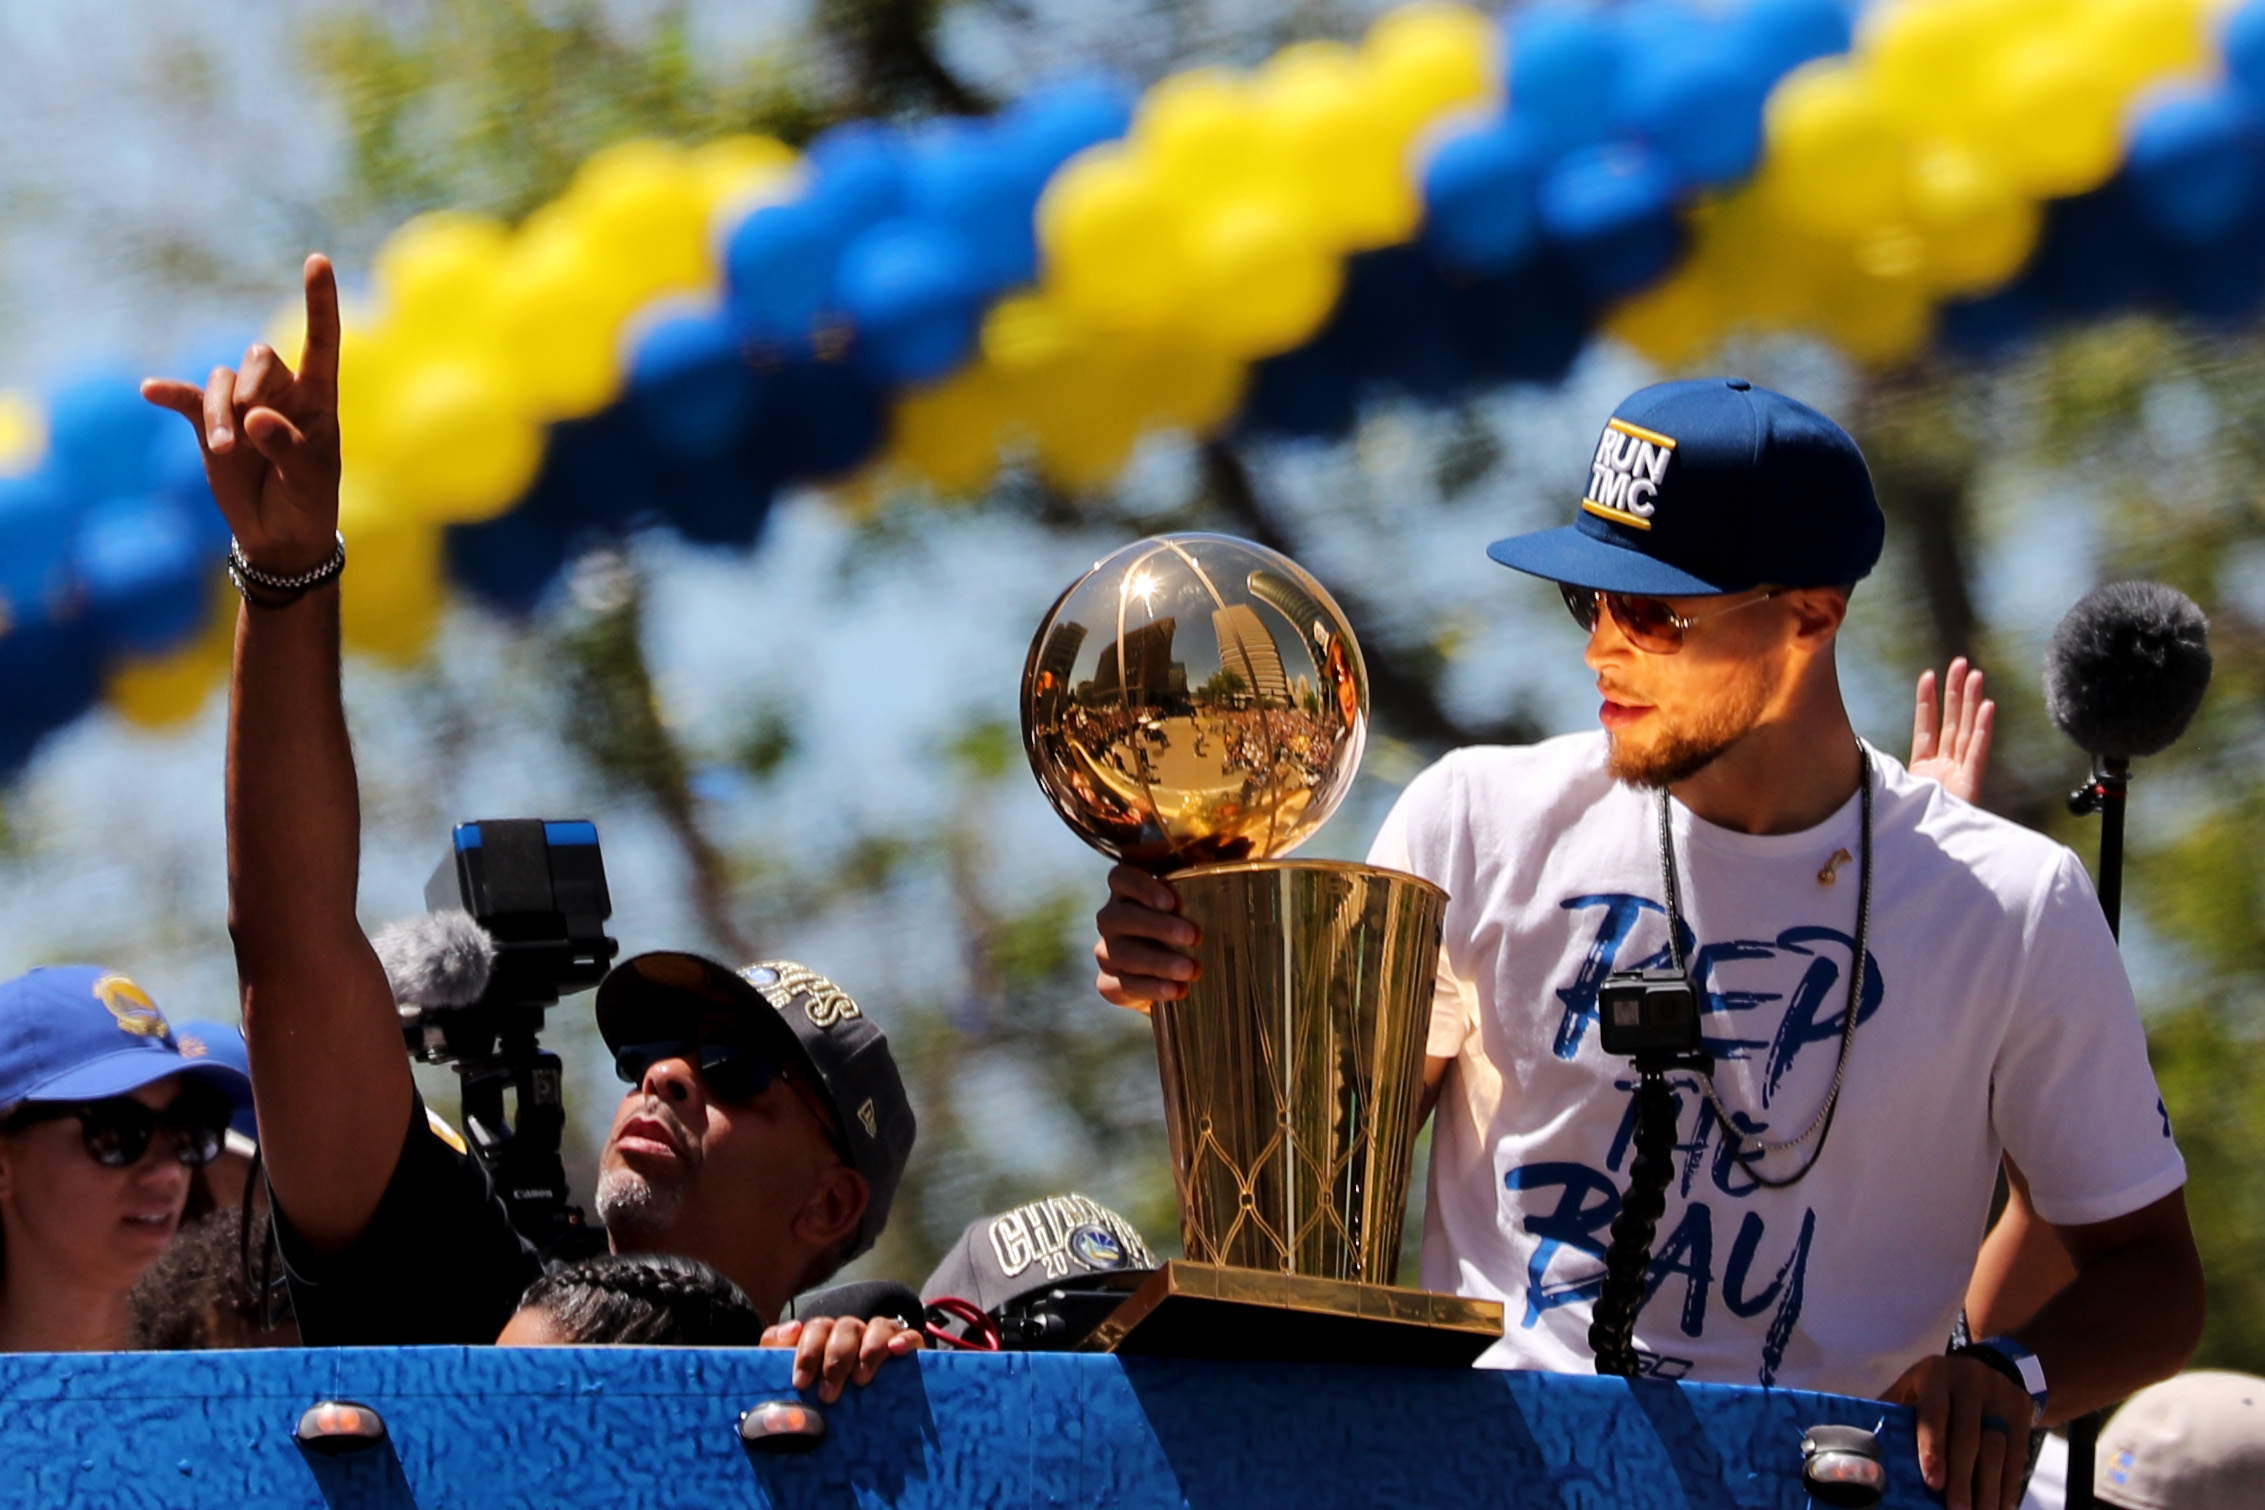 Warriors stars get up close to roaring crowd during parade